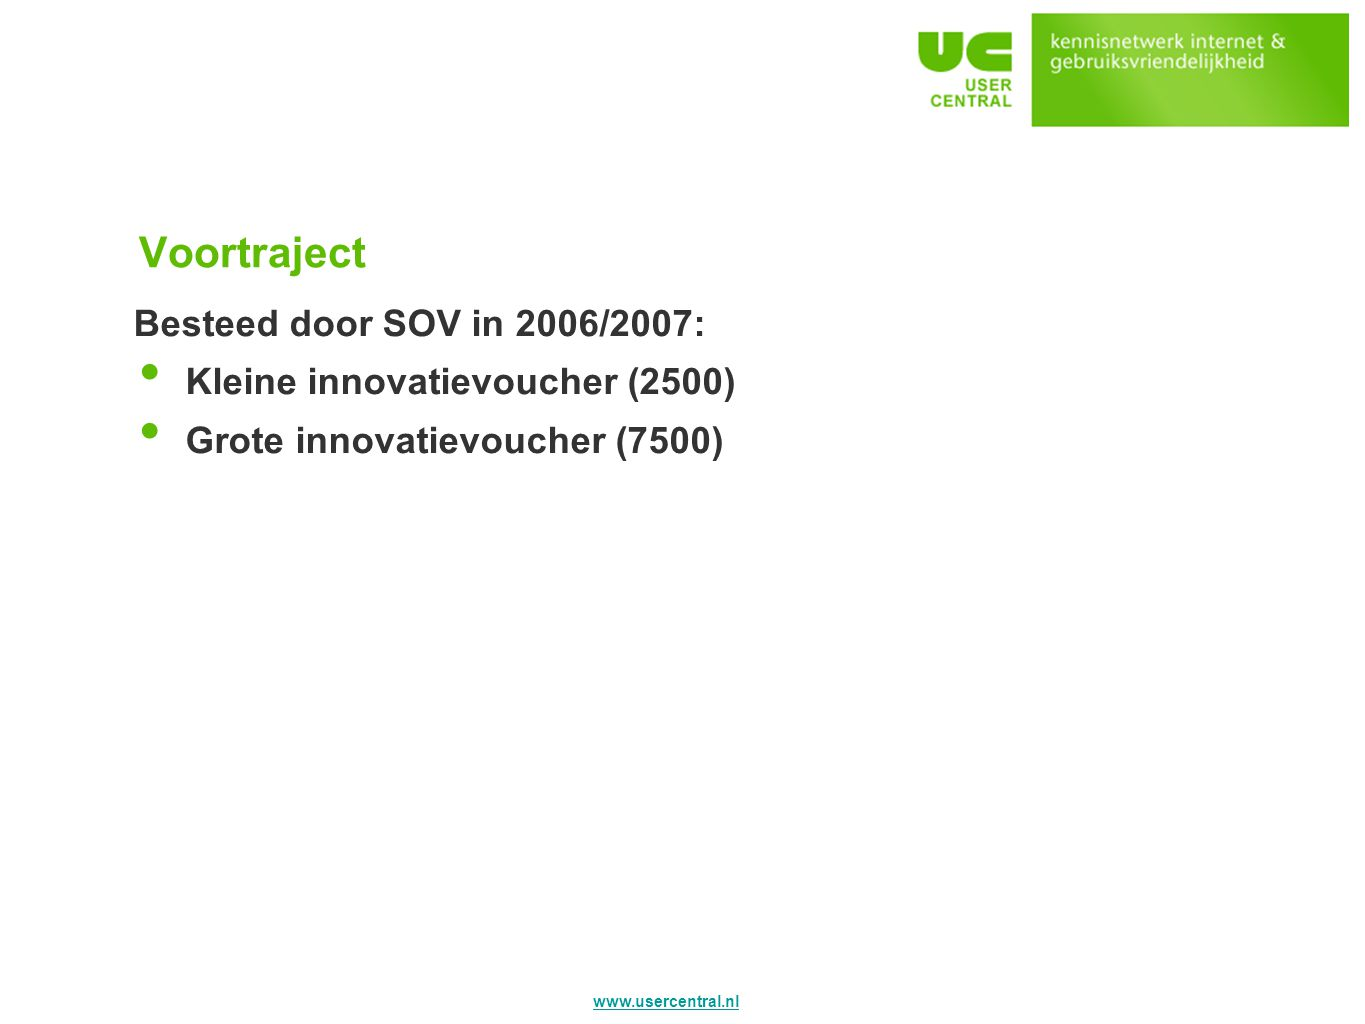 Voortraject Besteed door SOV in 2006/2007: